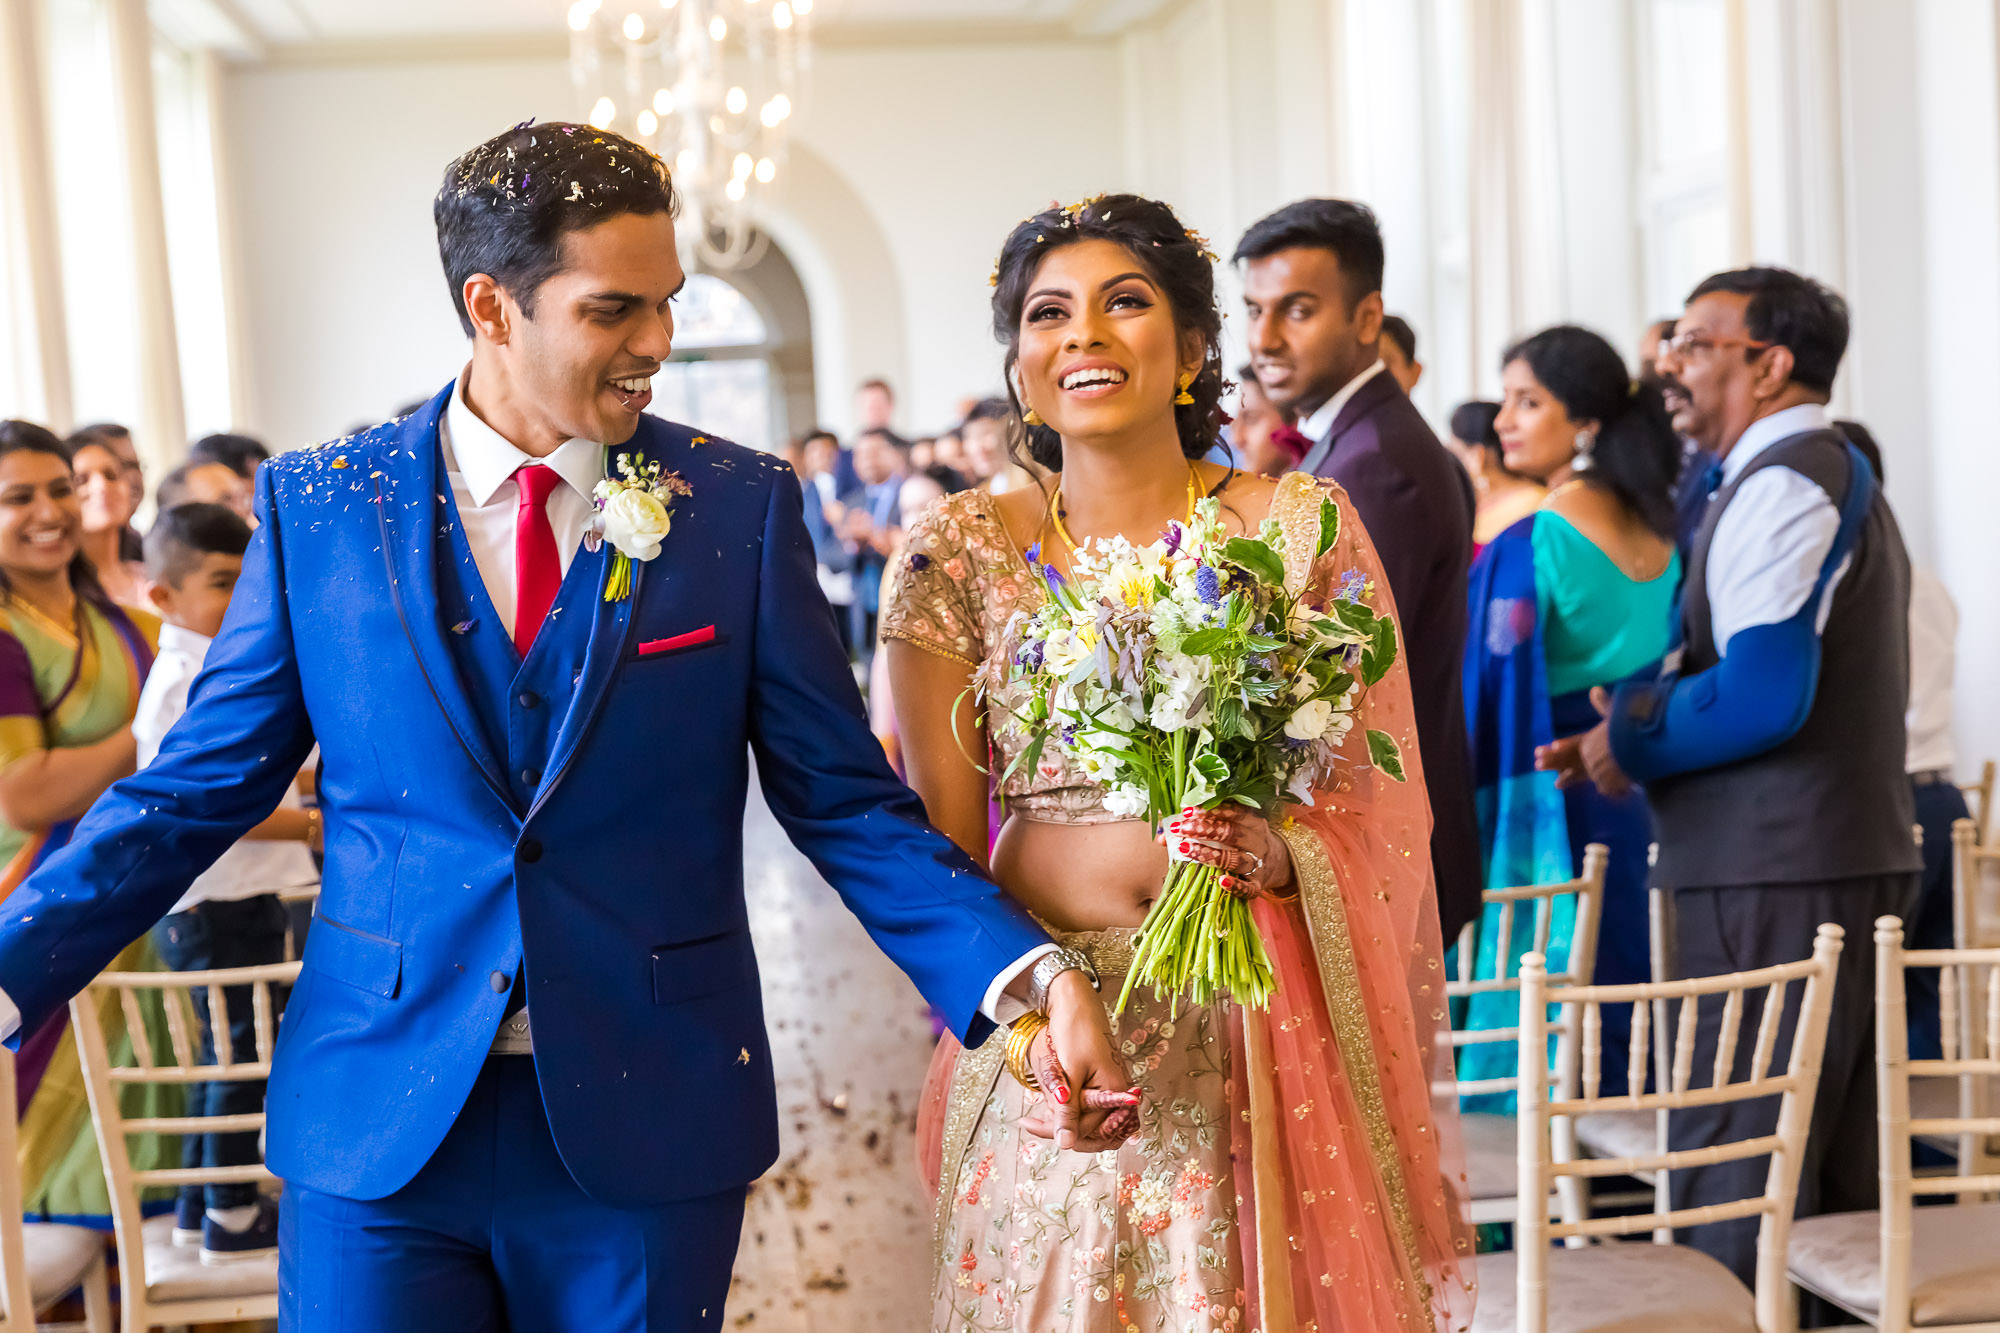 asian-wedding-hindu-tamil-photographer-heythorpe-oxford-0237.jpg